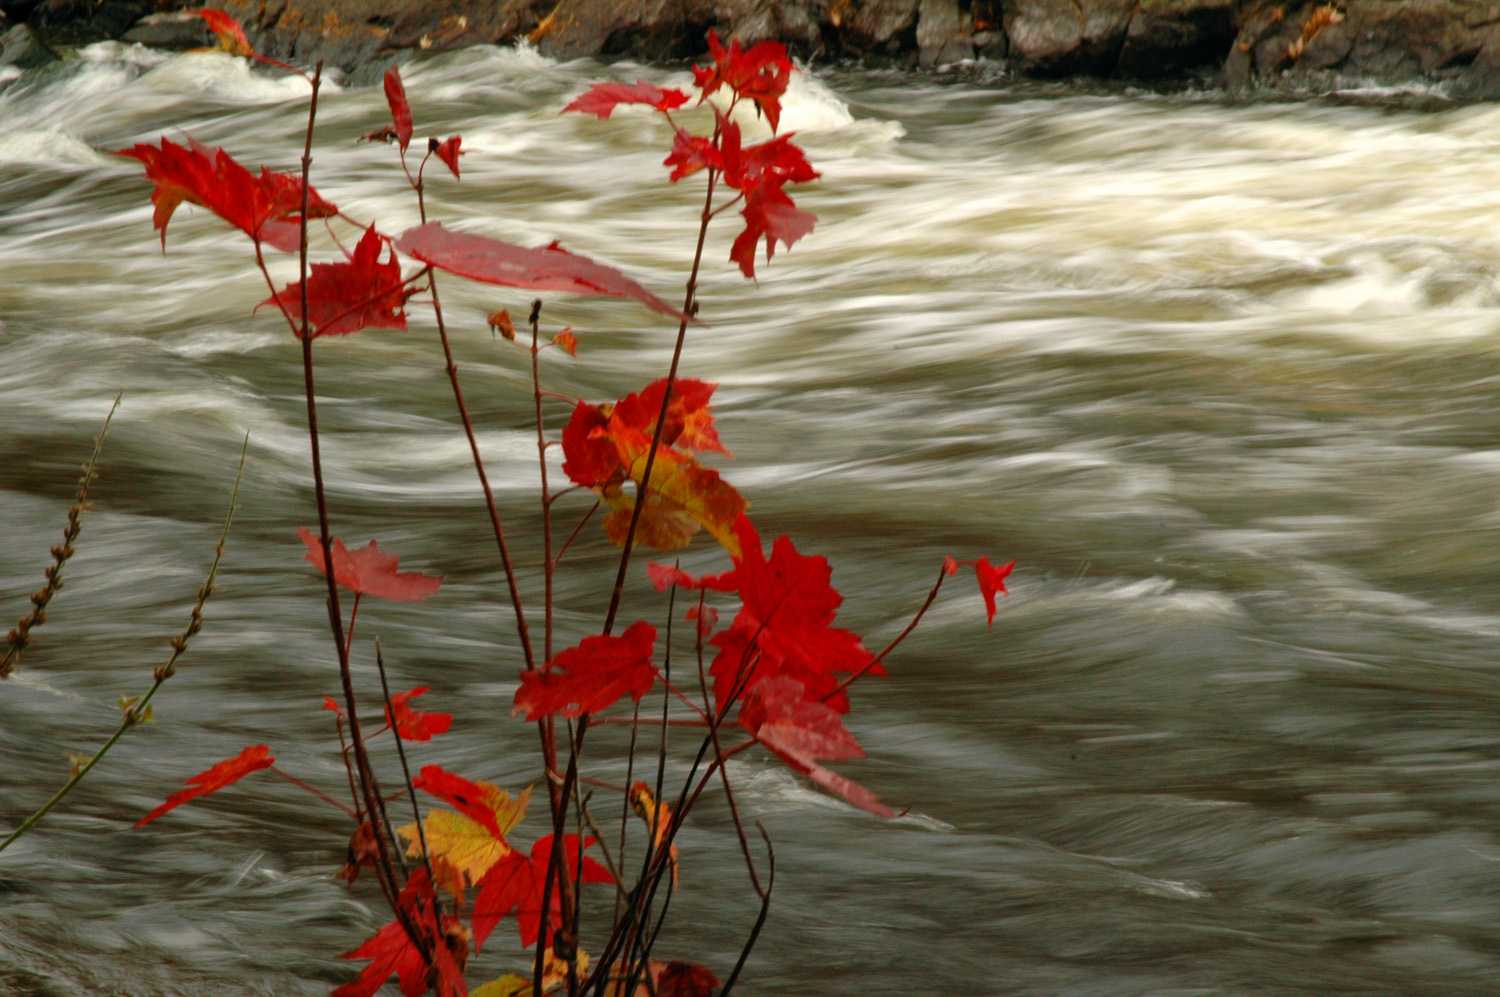 Raging river, fall leaves, near Blakeney, ON